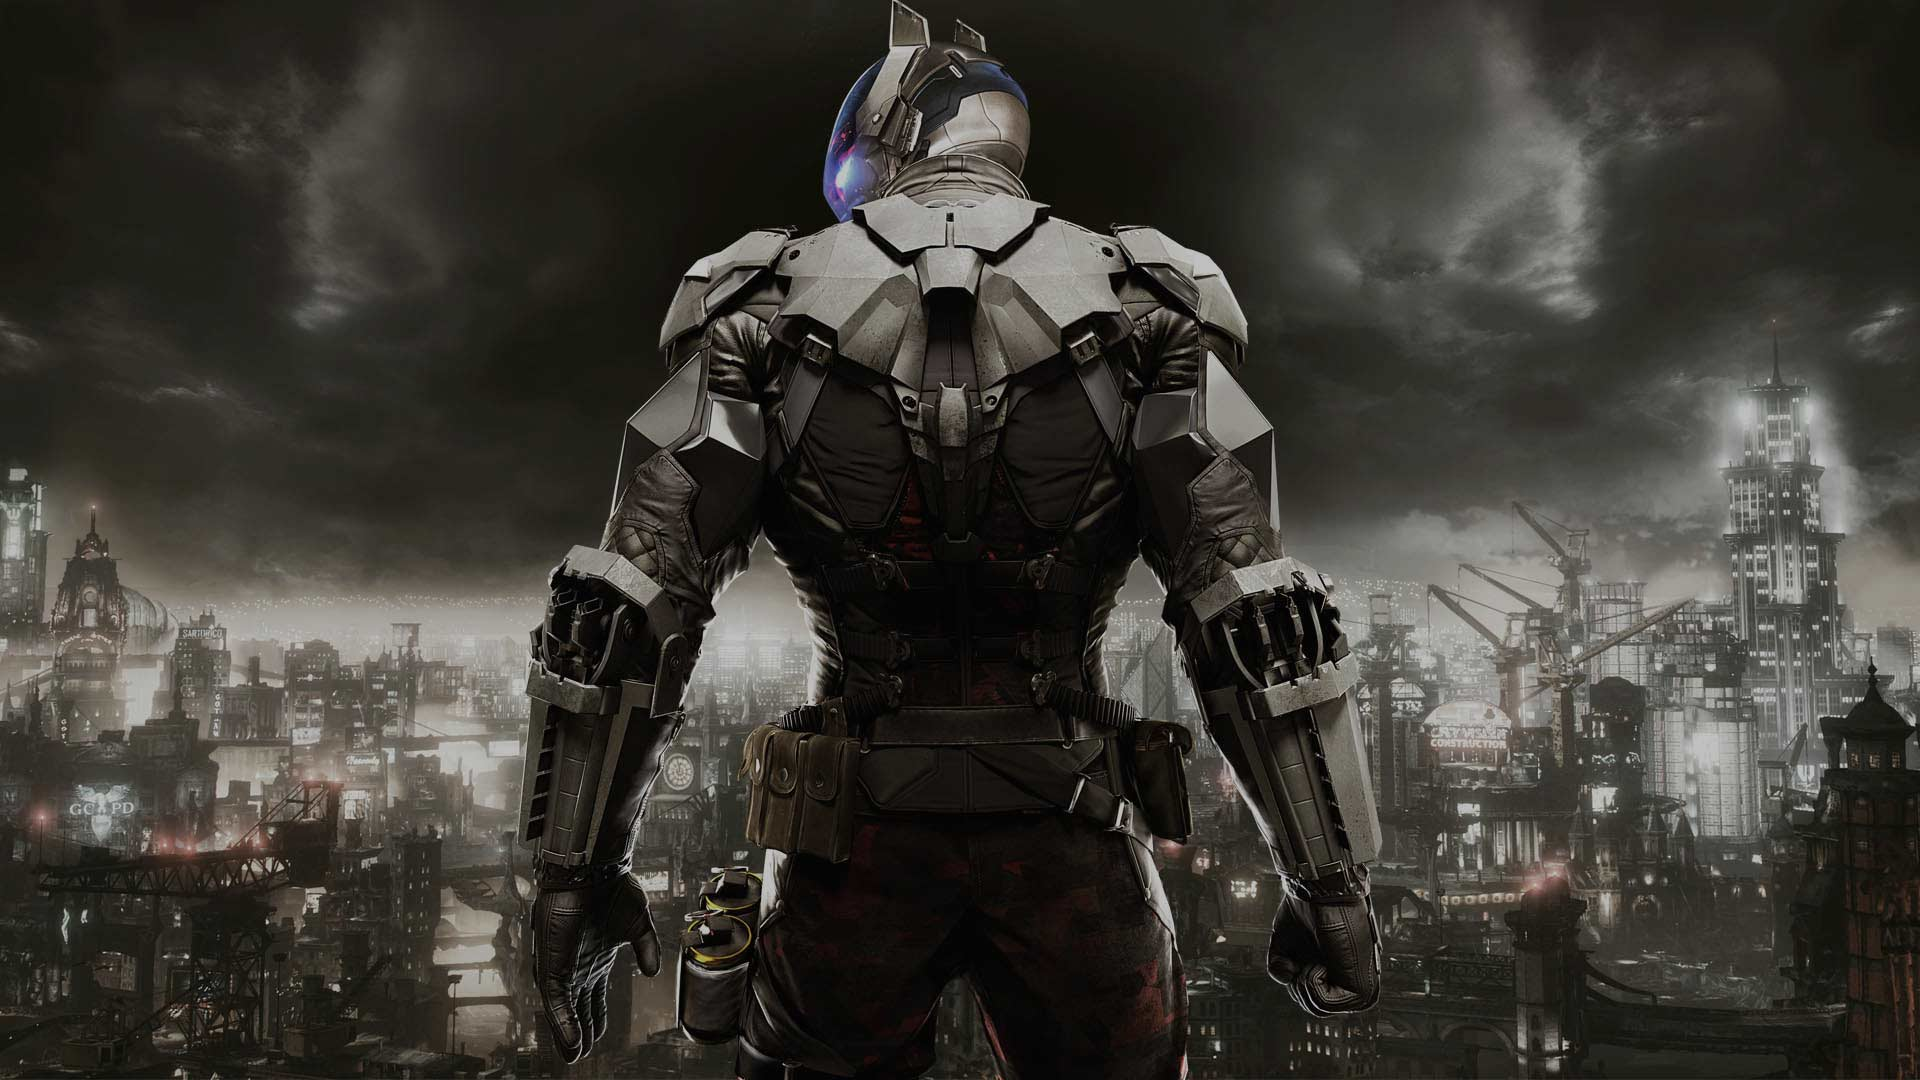 <a href='index.php/extensions/s5-image-and-content-fader'>Arkham Knight</a>